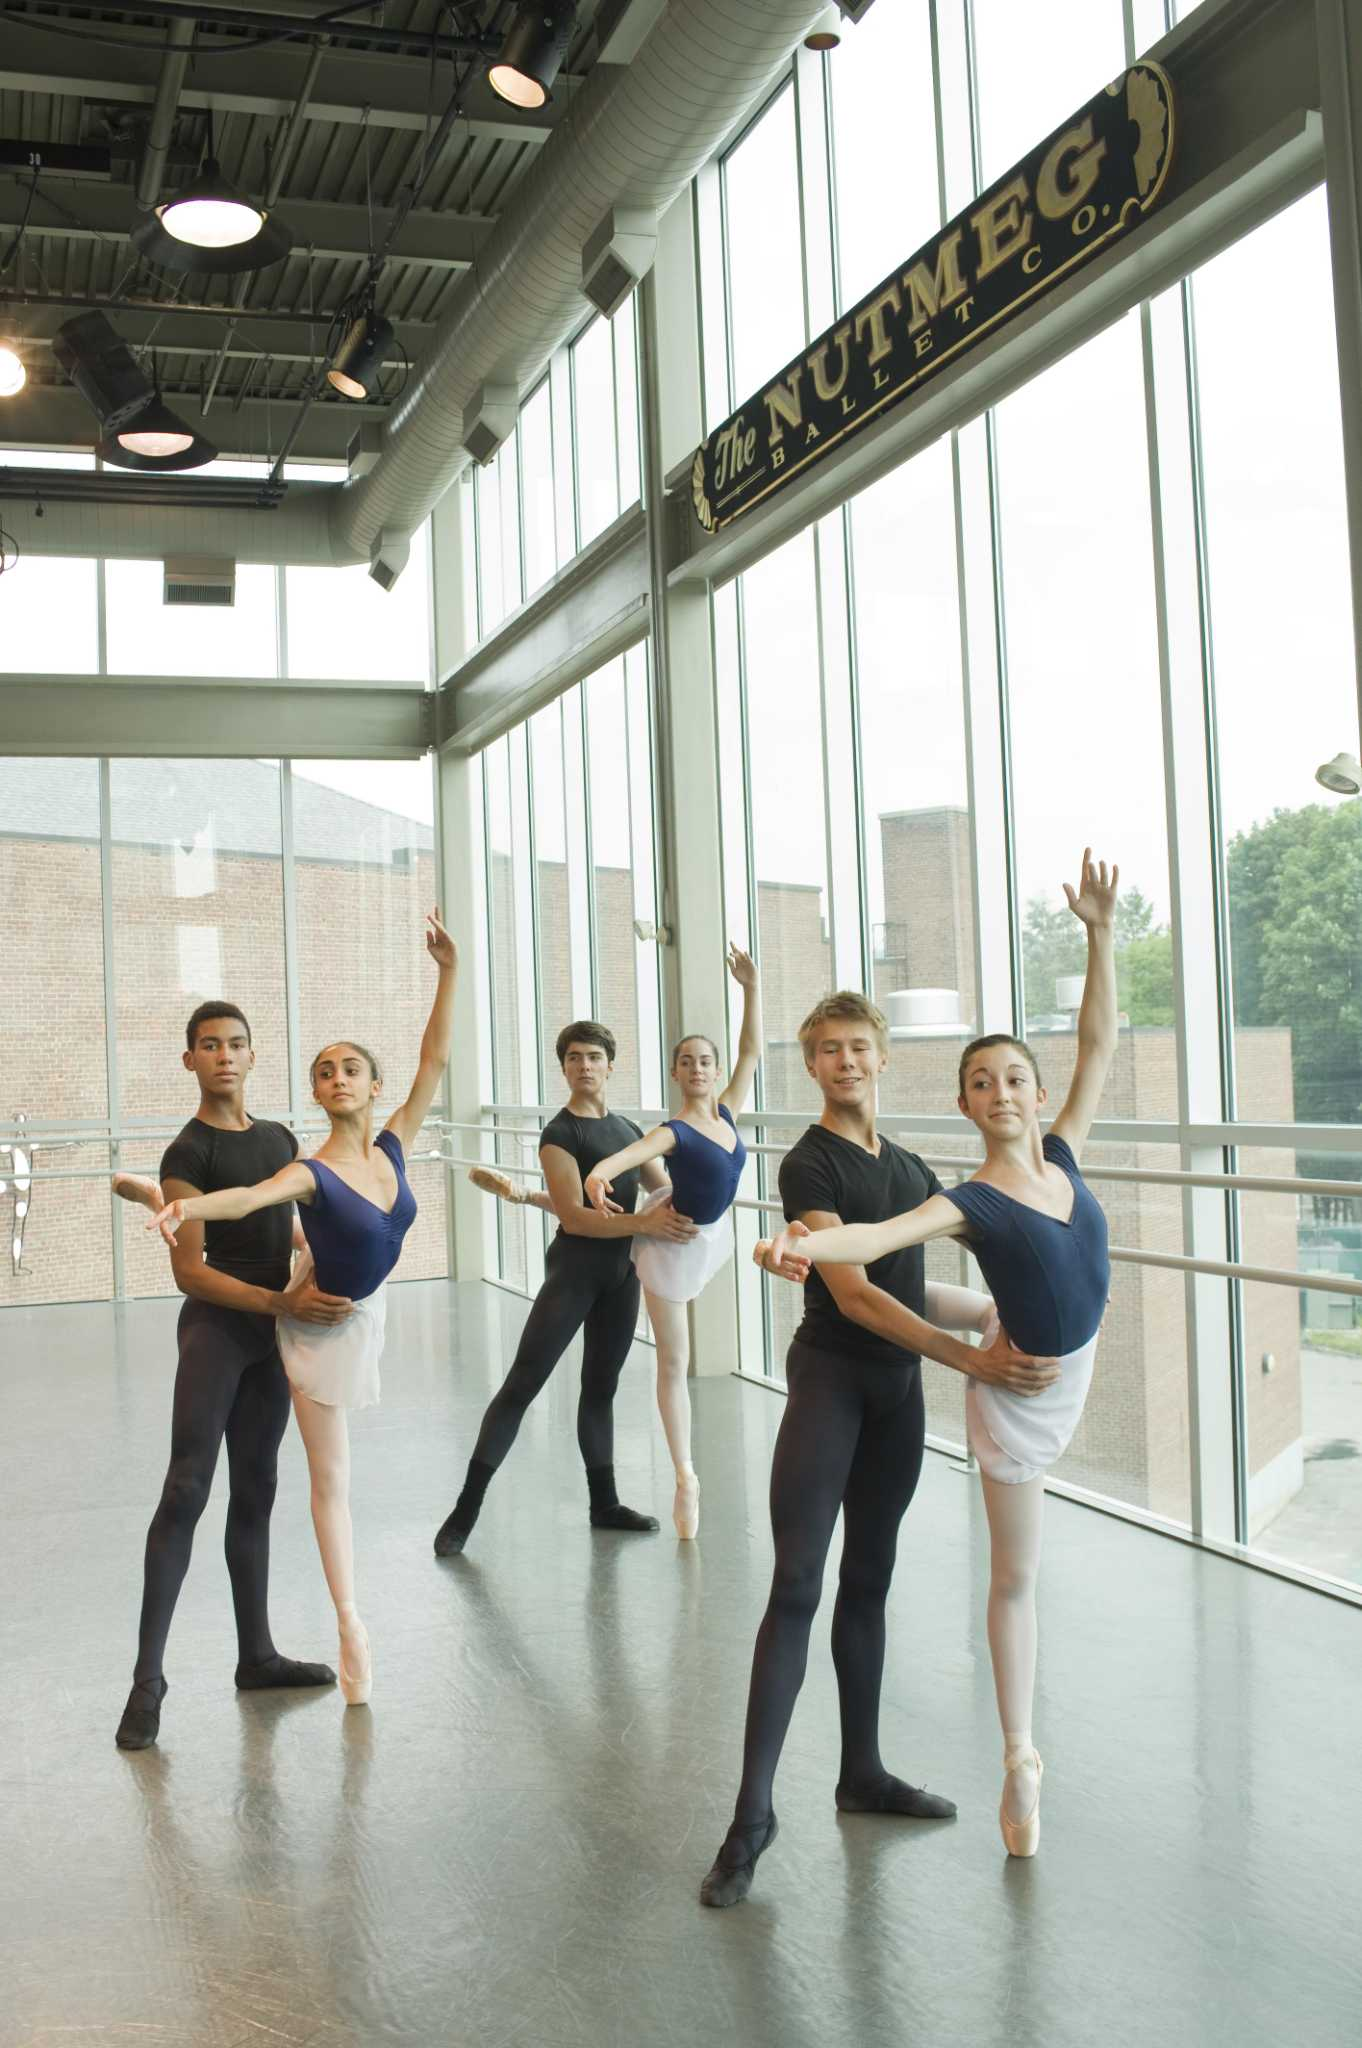 At Nutmeg Ballet, summer intensive auditions continue for young